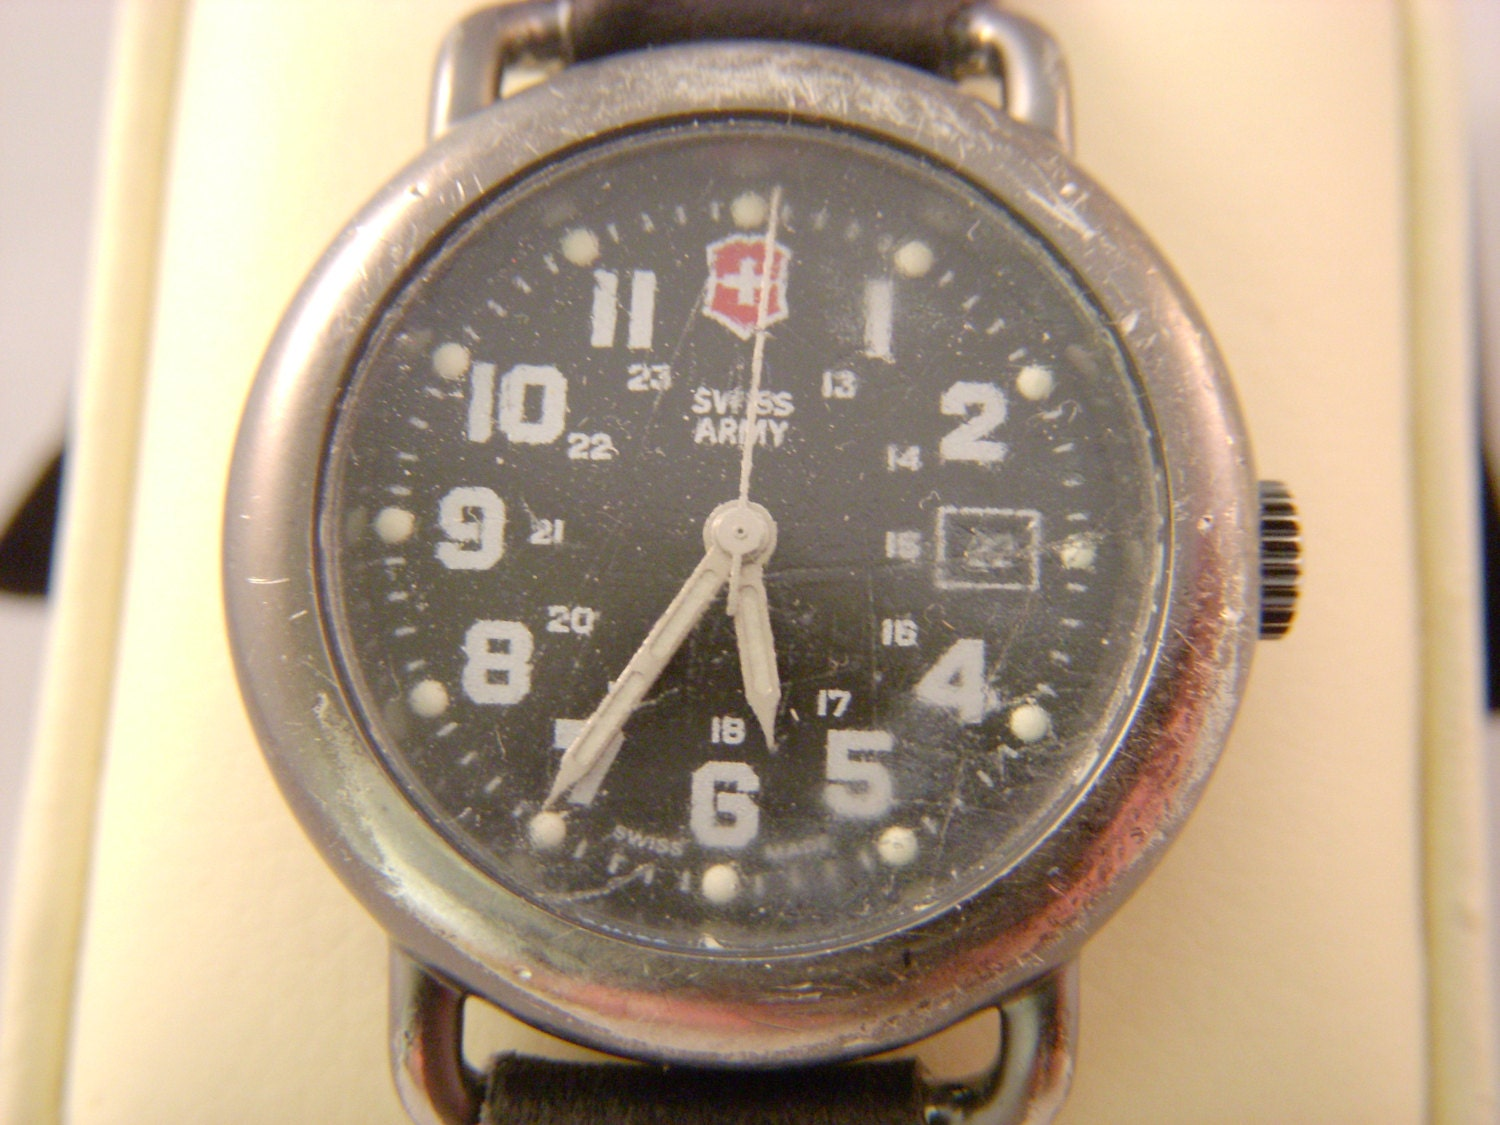 Vintage Swiss Army Watch Running and Keeping Time